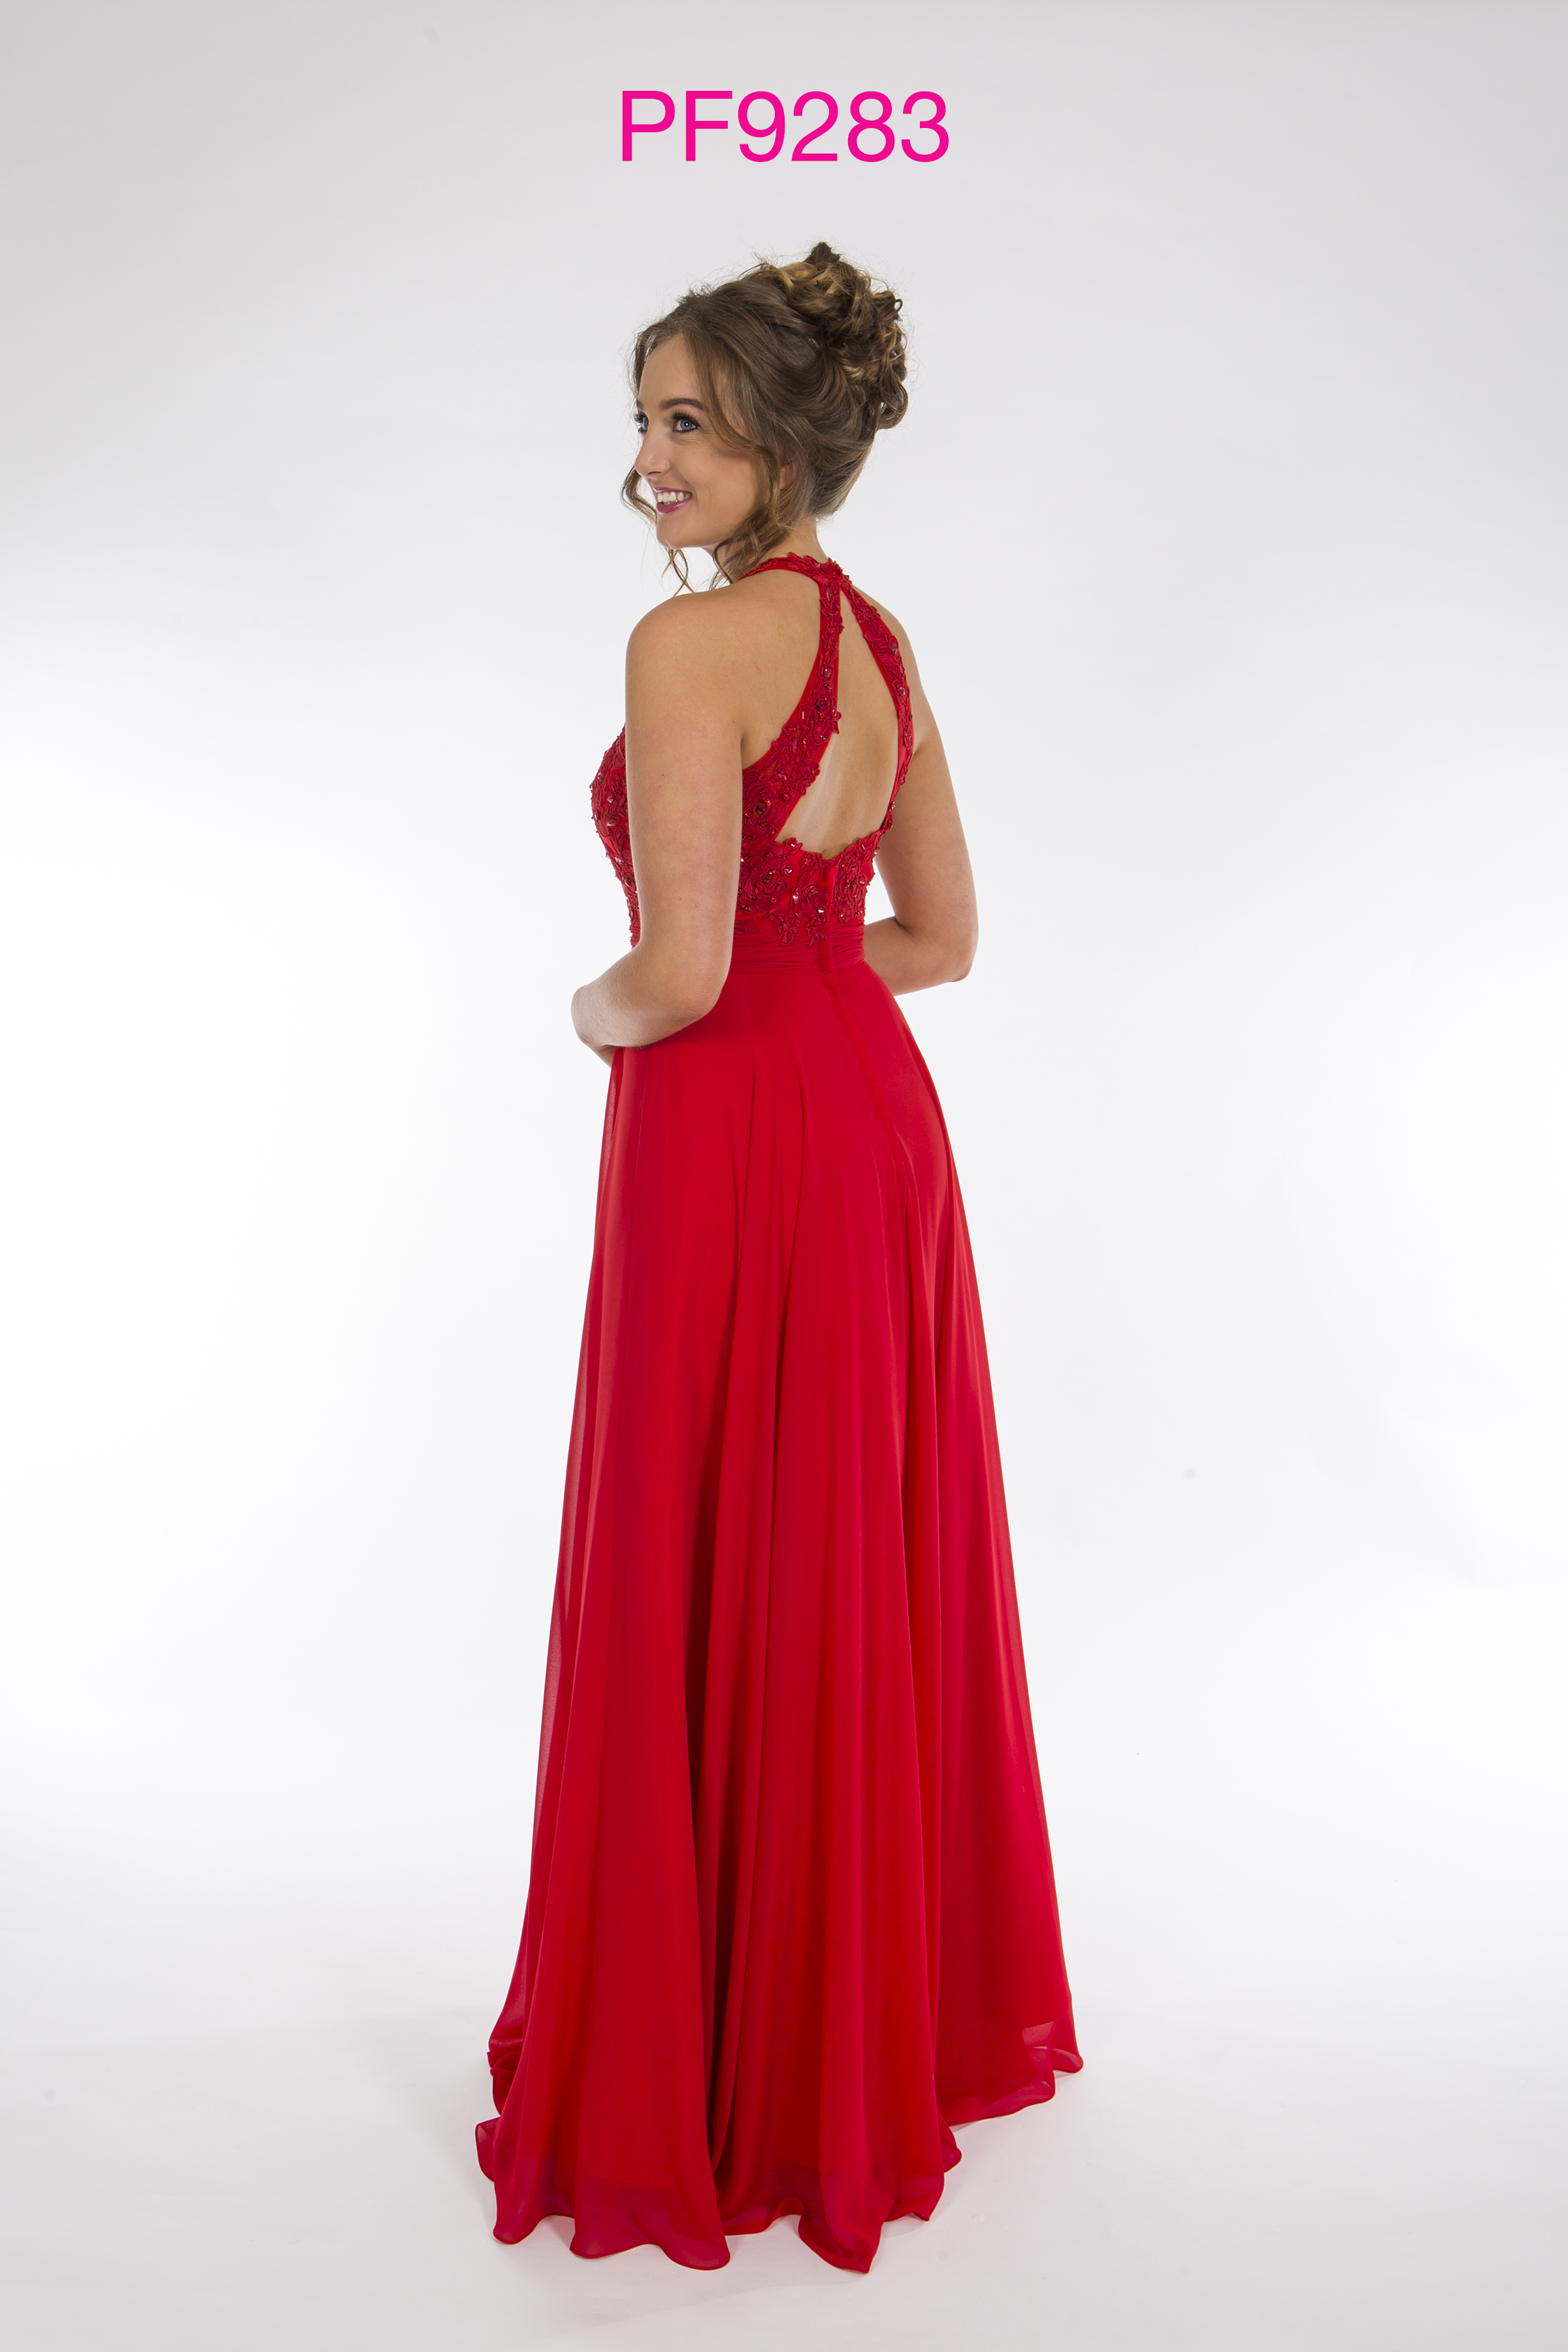 Prom Frocks Pf9283 Red Prom Dress Prom Frocks Uk Prom